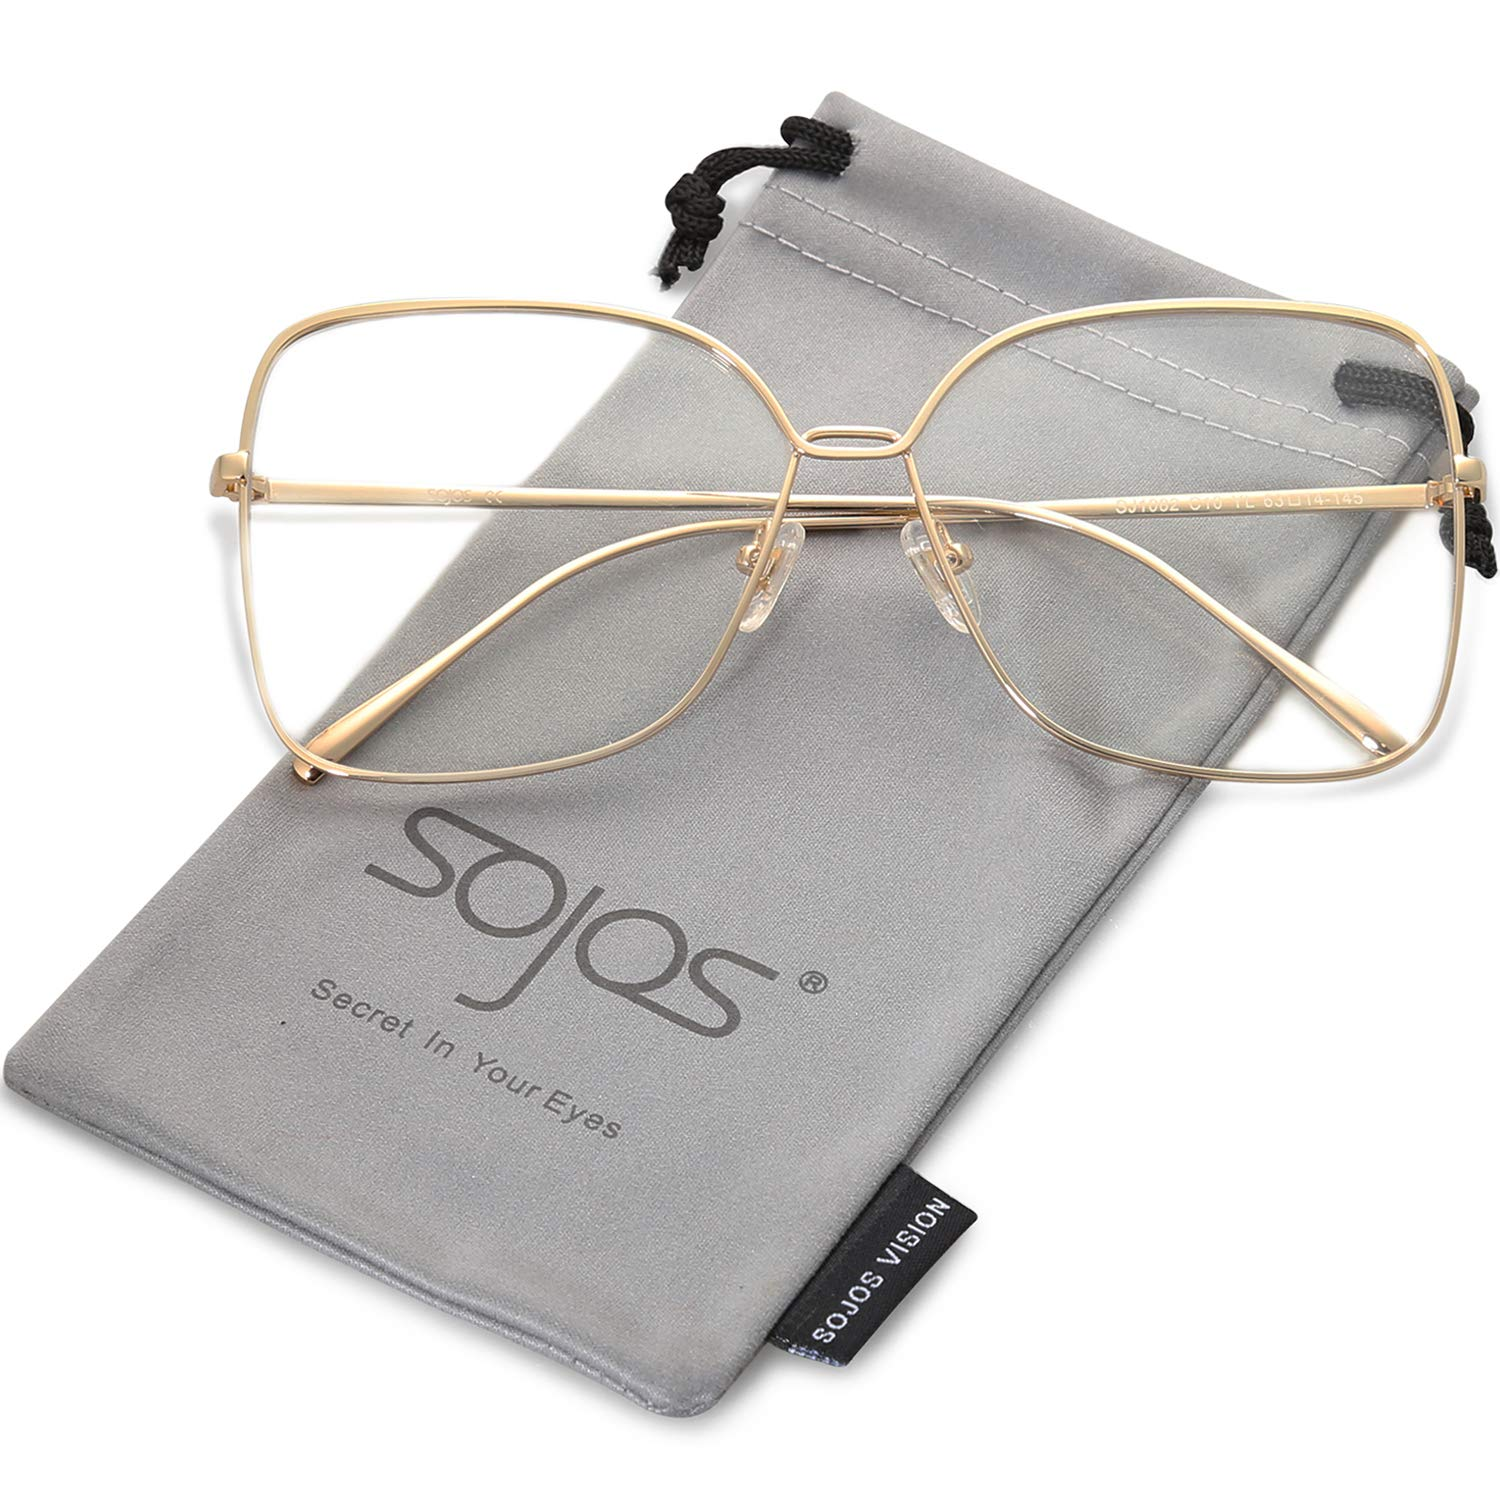 fd3a8cade0 SOJOS Fashion Oversized Square Sunglasses for Women Flat Mirrored Lens  SJ1082 product image